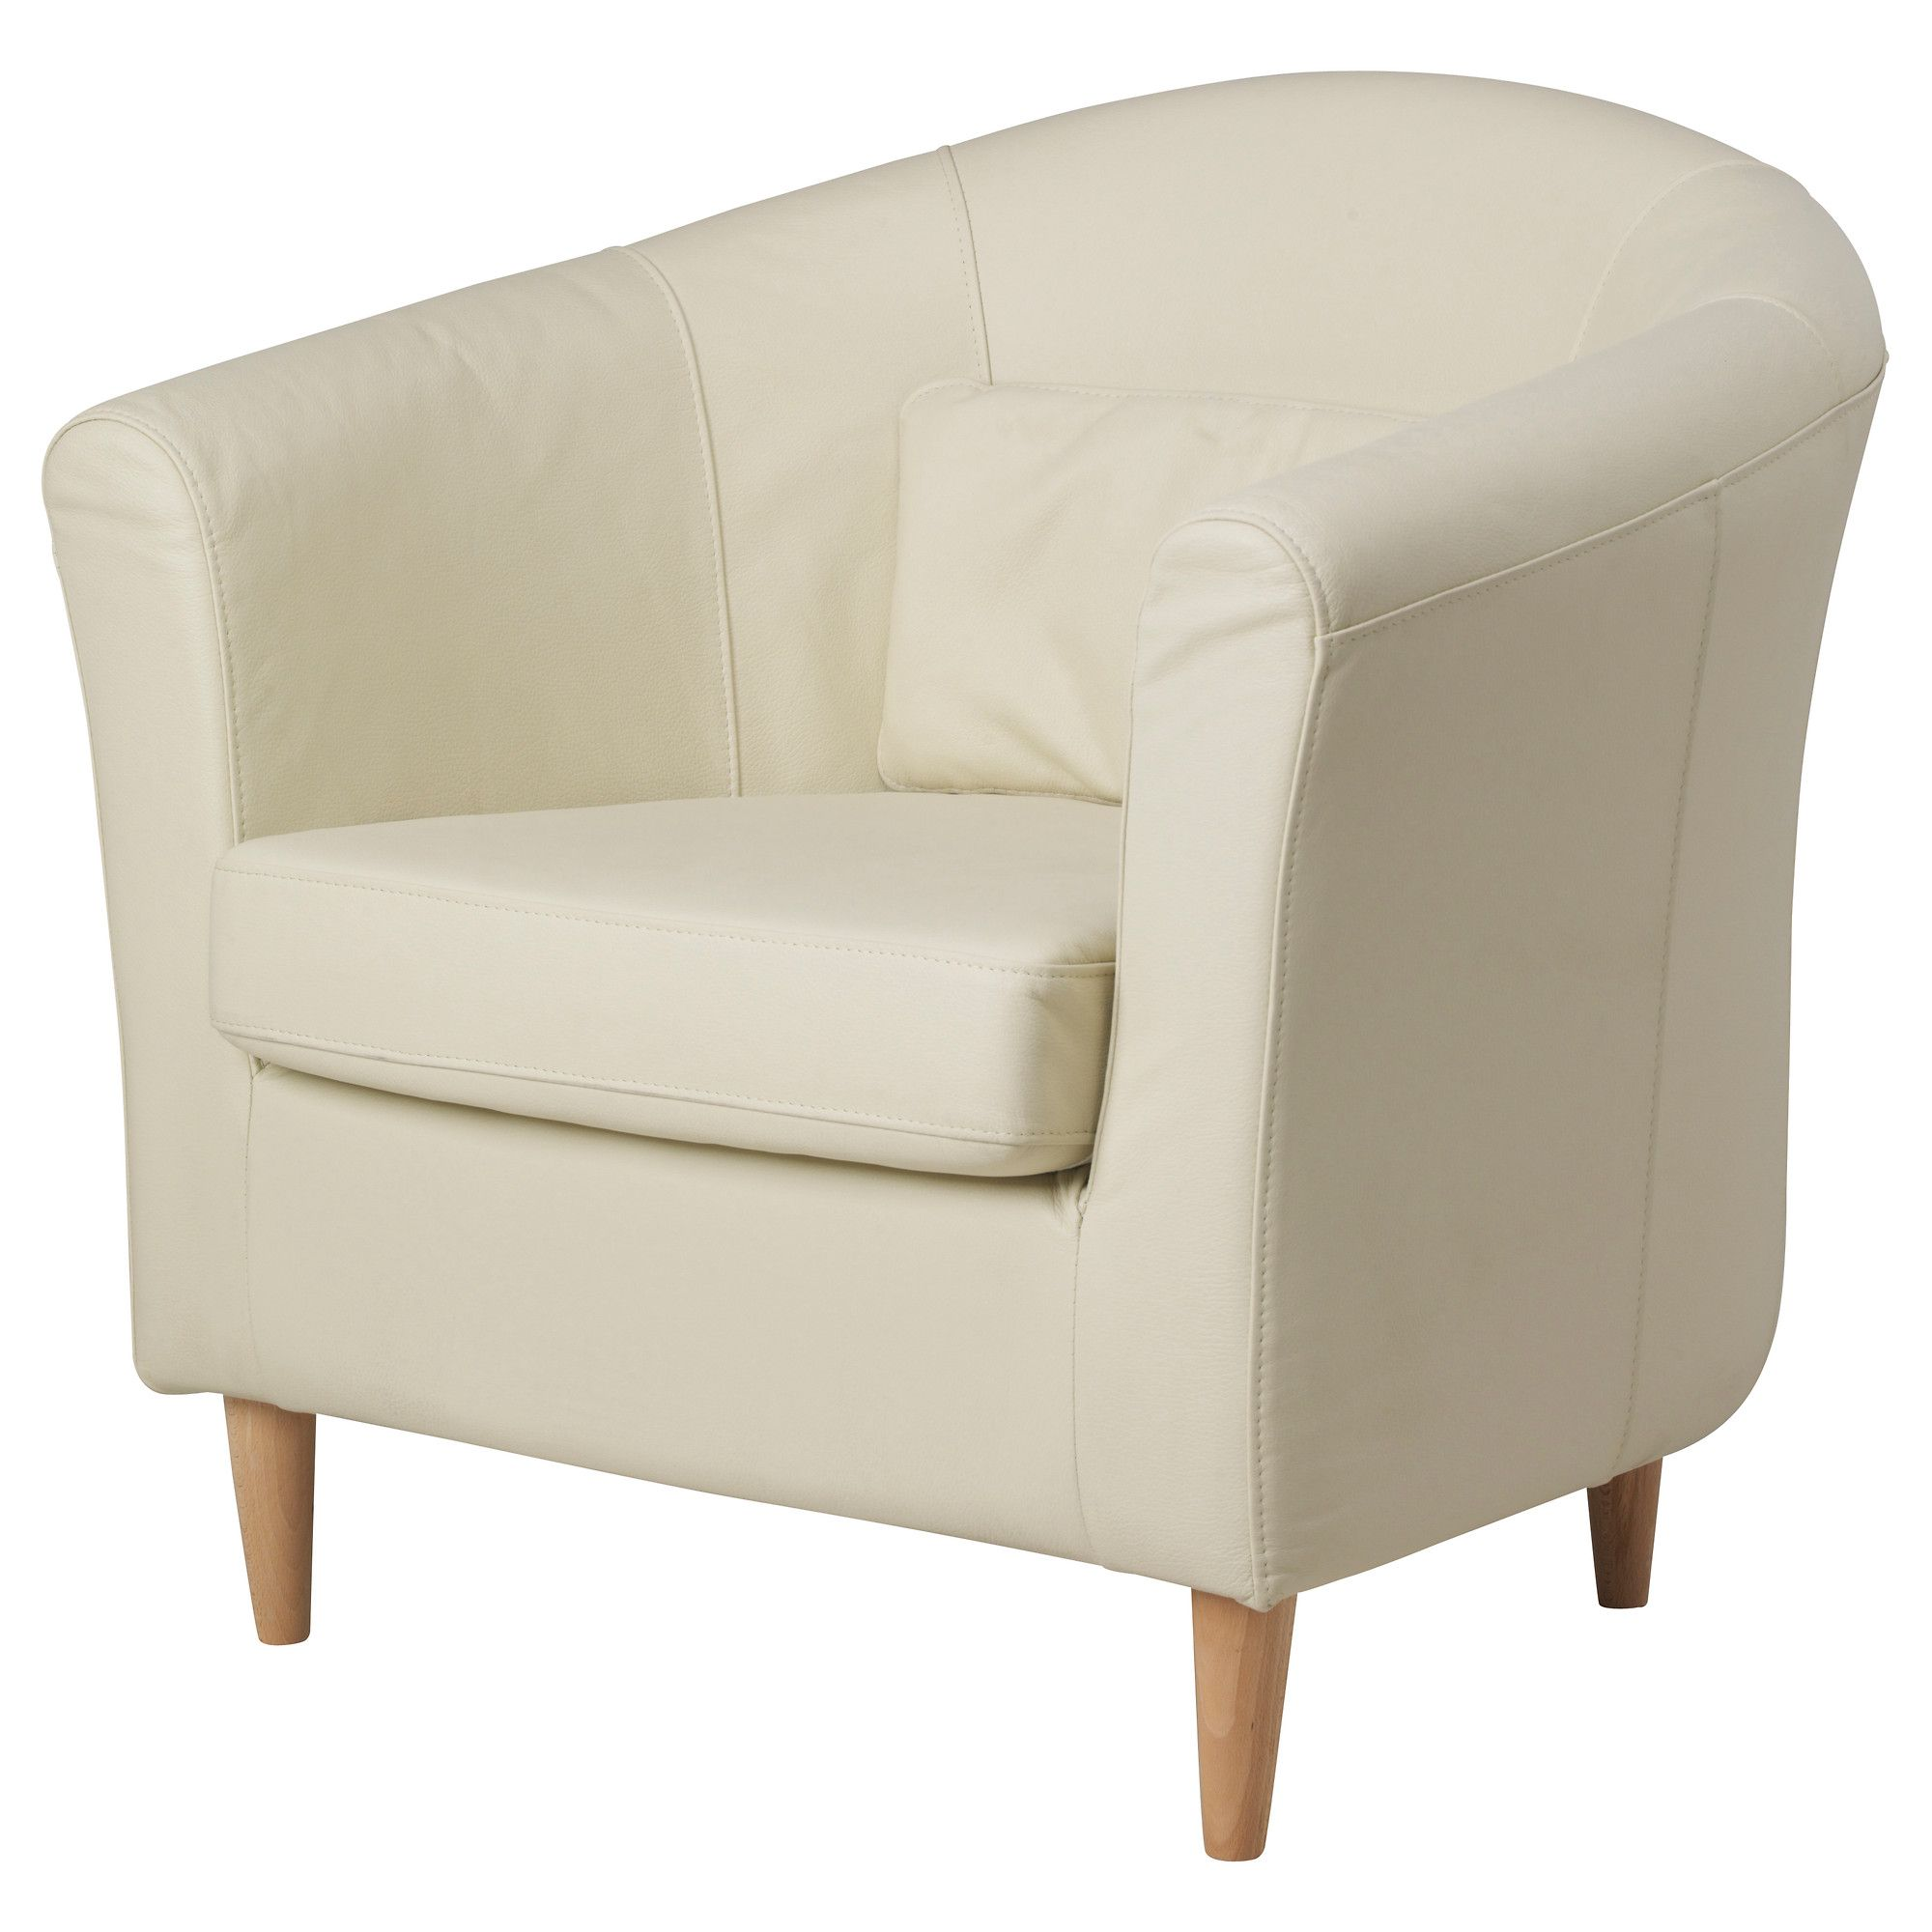 Tullsta Chair Robust Off White Ikea 199